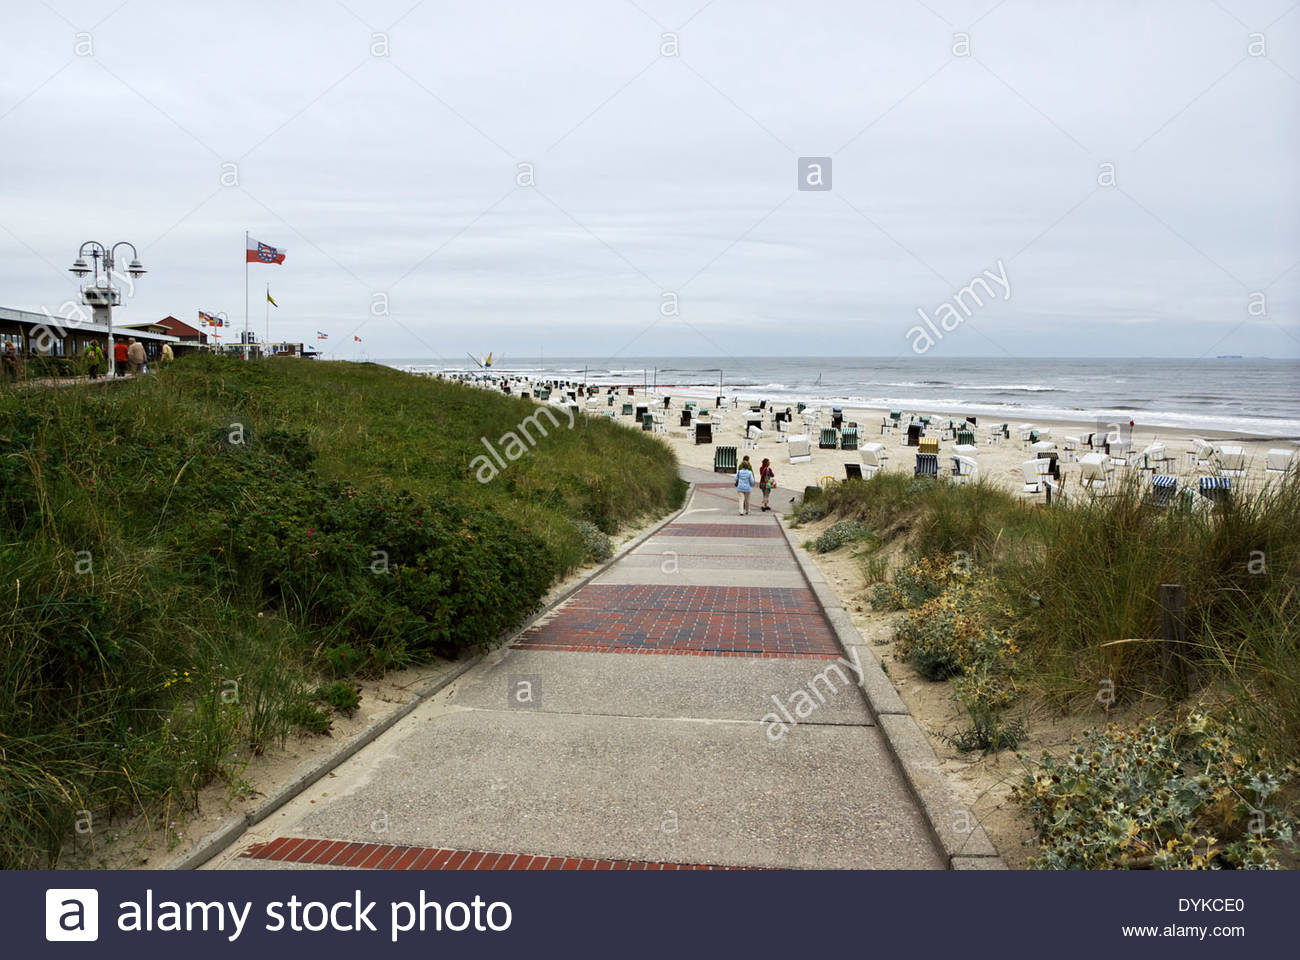 Strandkörbe, beach chairs, on the sandy beach of Insel Wangerooge. - Stock Image